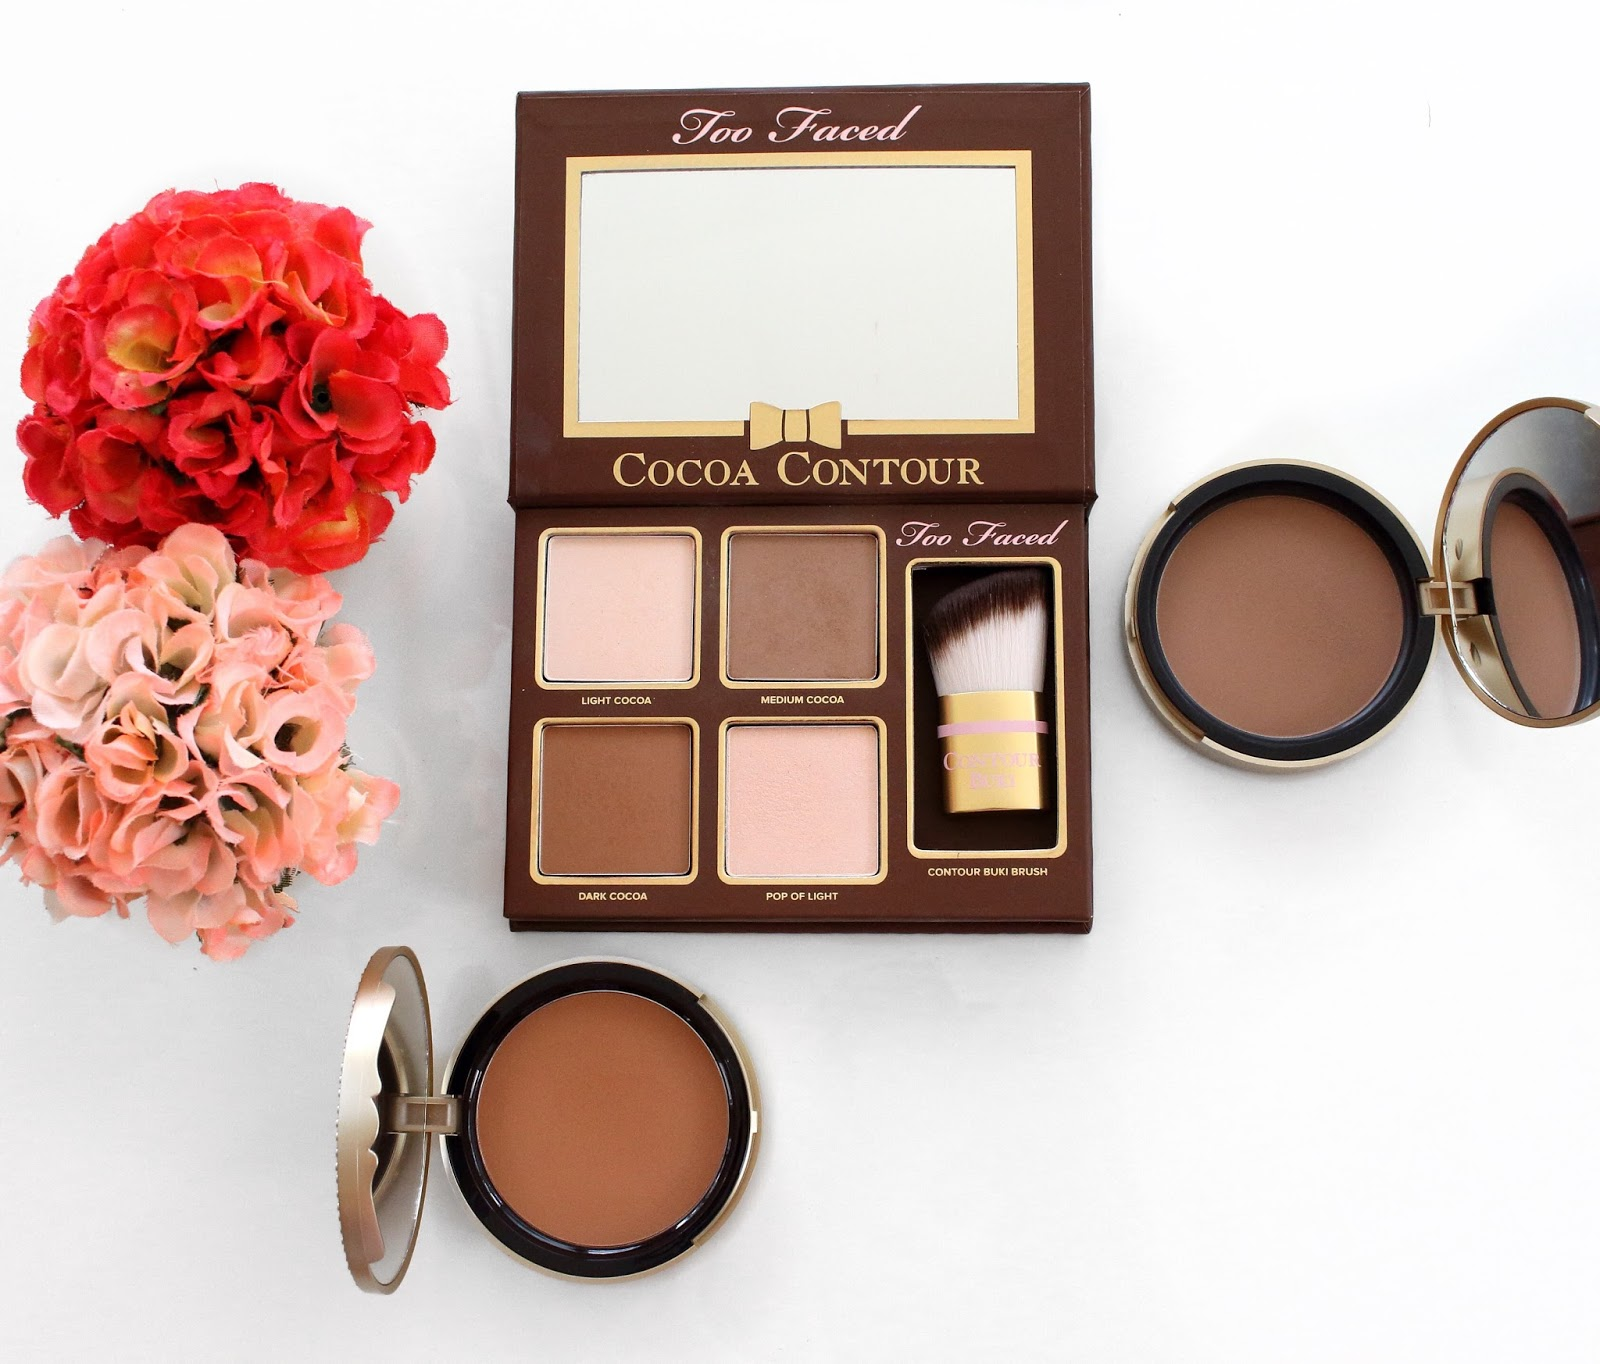 M.N.H. Beauty: REVIEW & SWATCHES: Too Faced Cocoa Contour